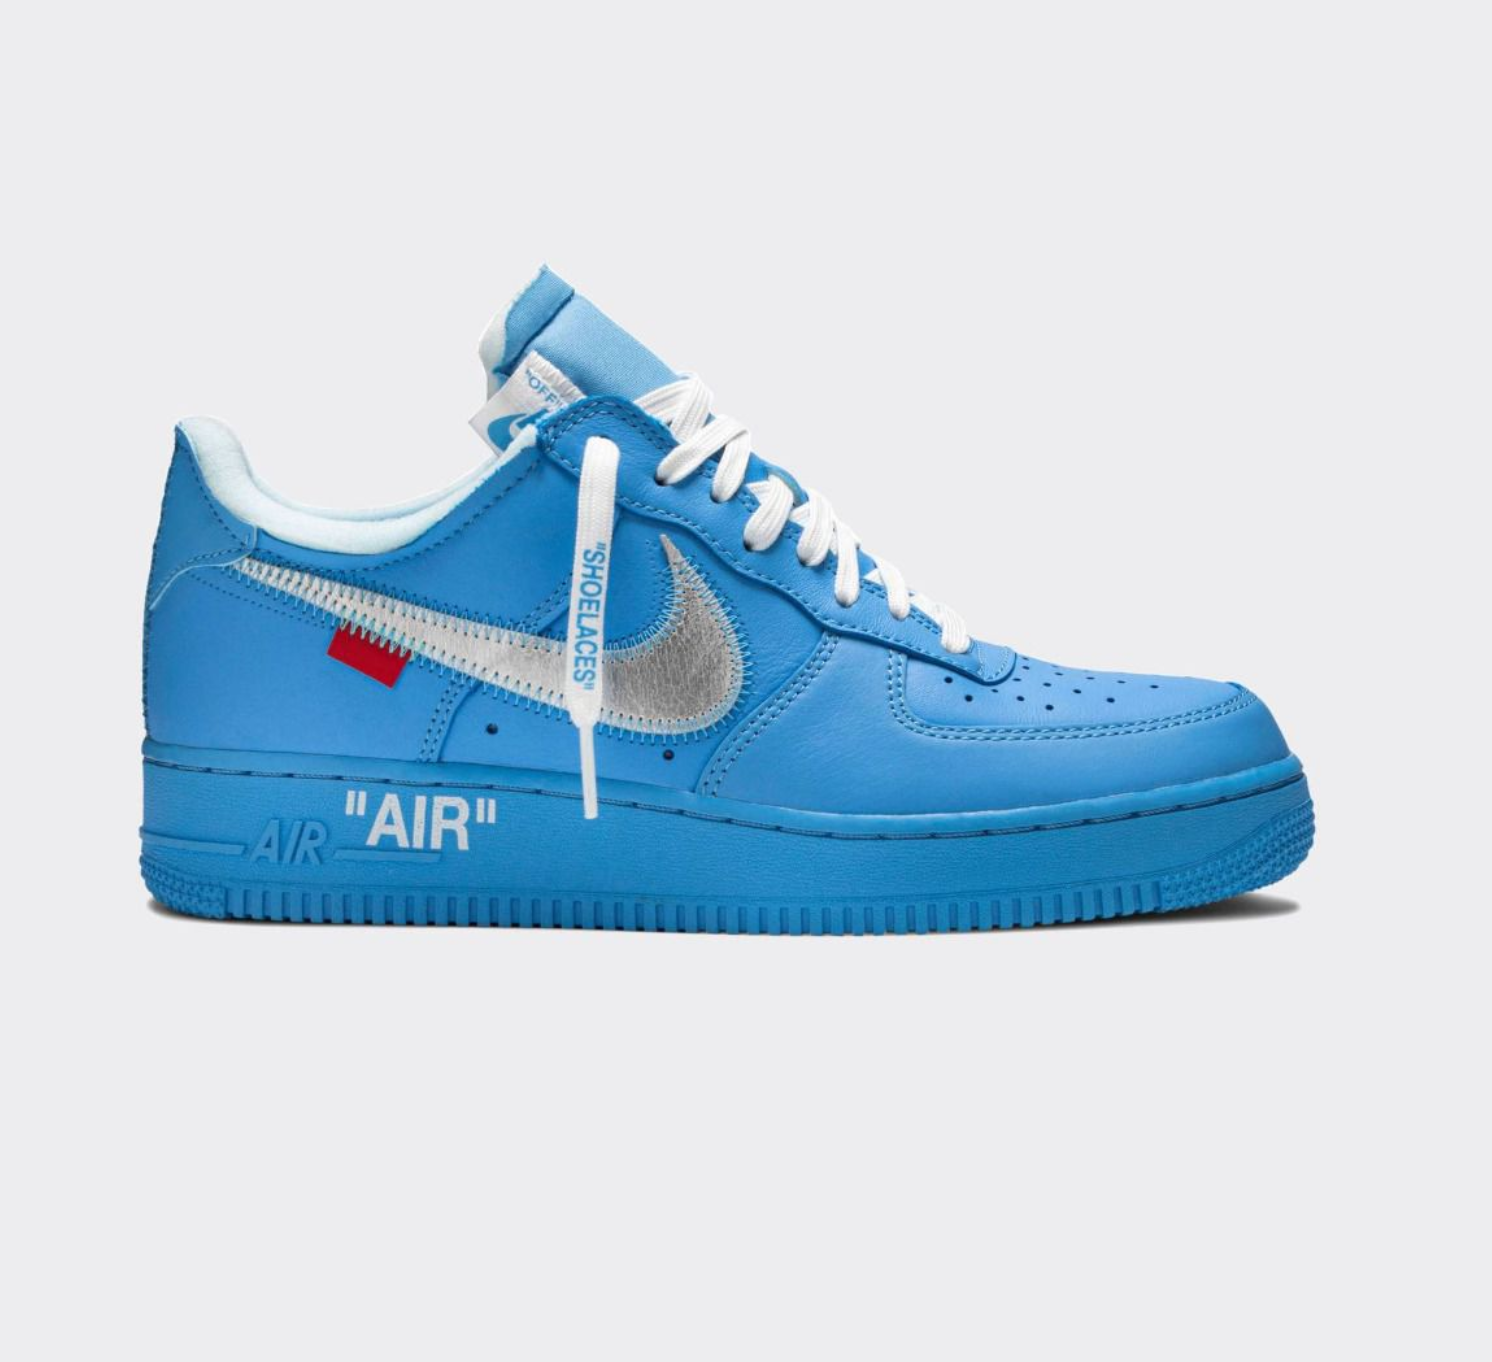 Rock the streets like the real OFF-WHITE x Nike Air Force 1 Low '07 'MCA' Cl1173400